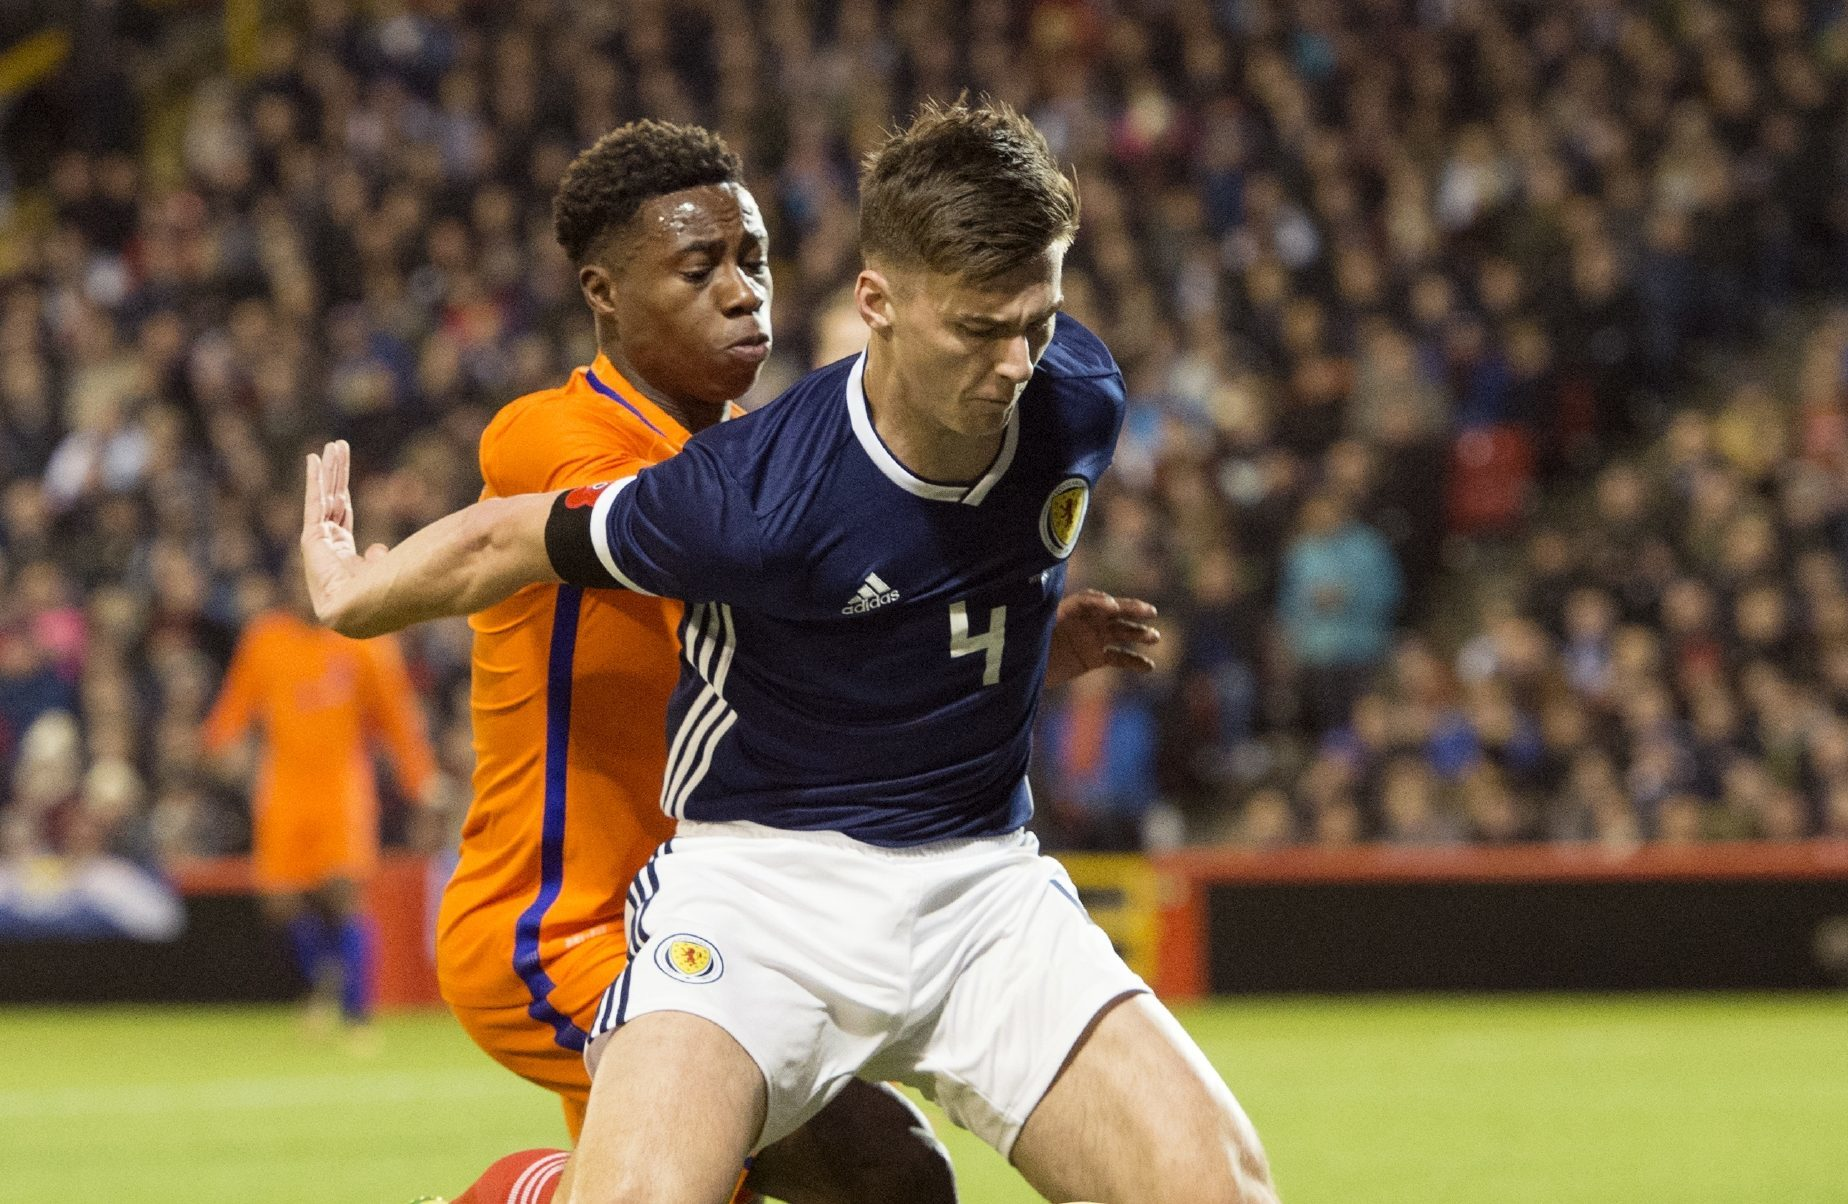 Kieran Tierney holds off Holland player Quincy Promes.